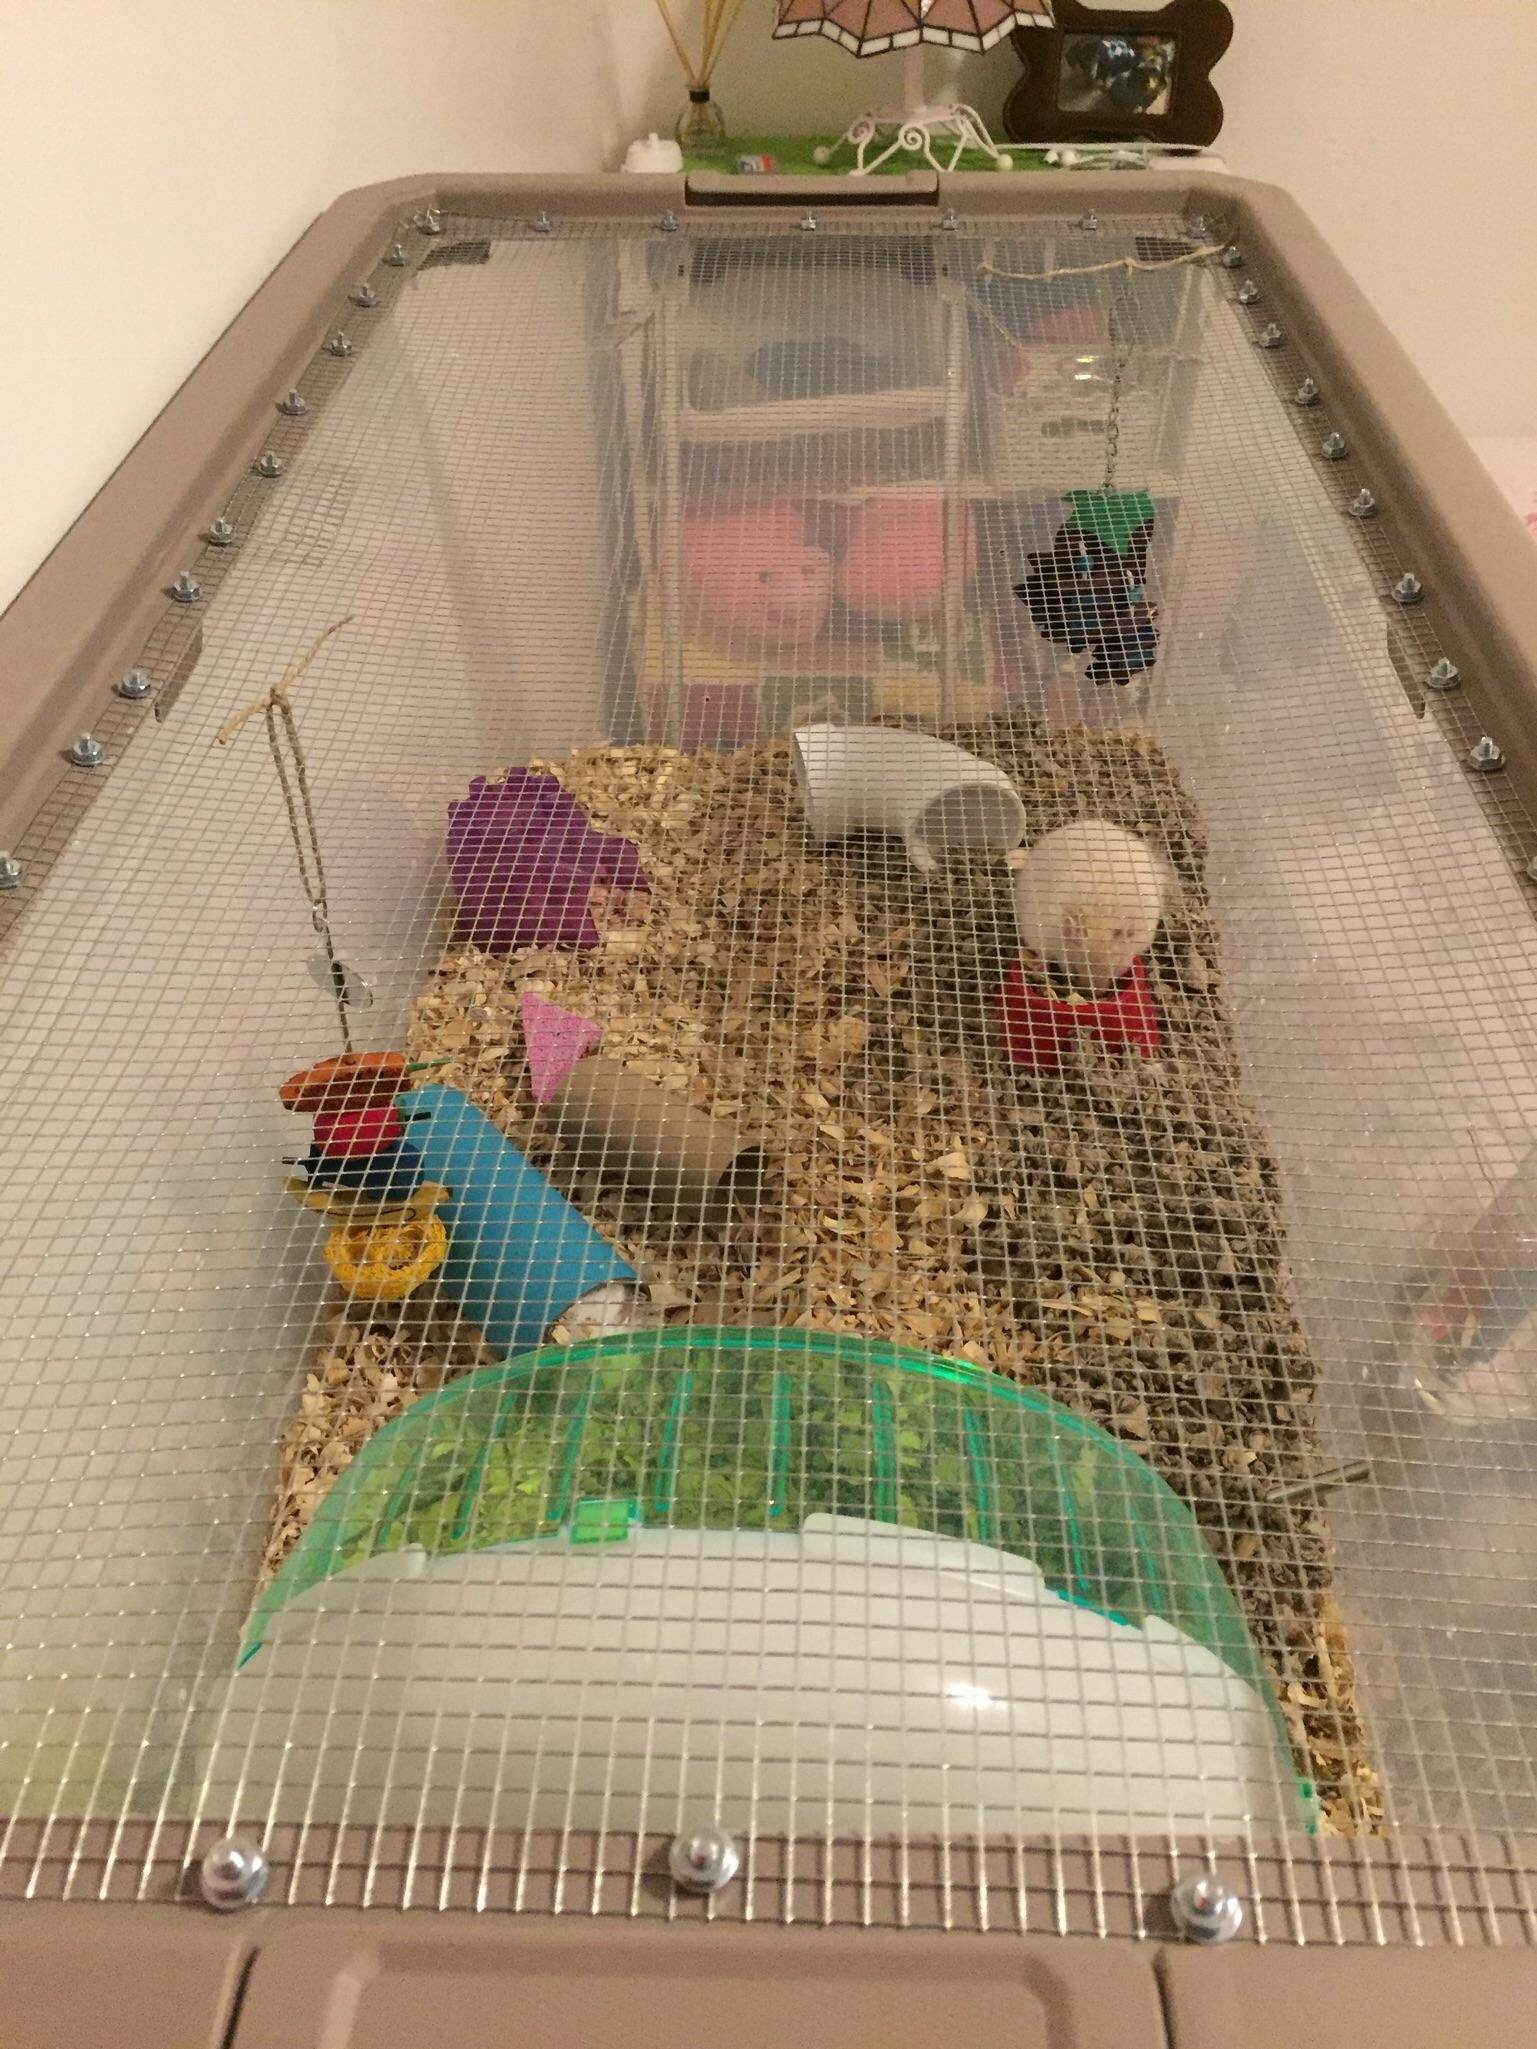 Pin By Lilly B On Animal Addict In 2020 Hamster Bin Cage